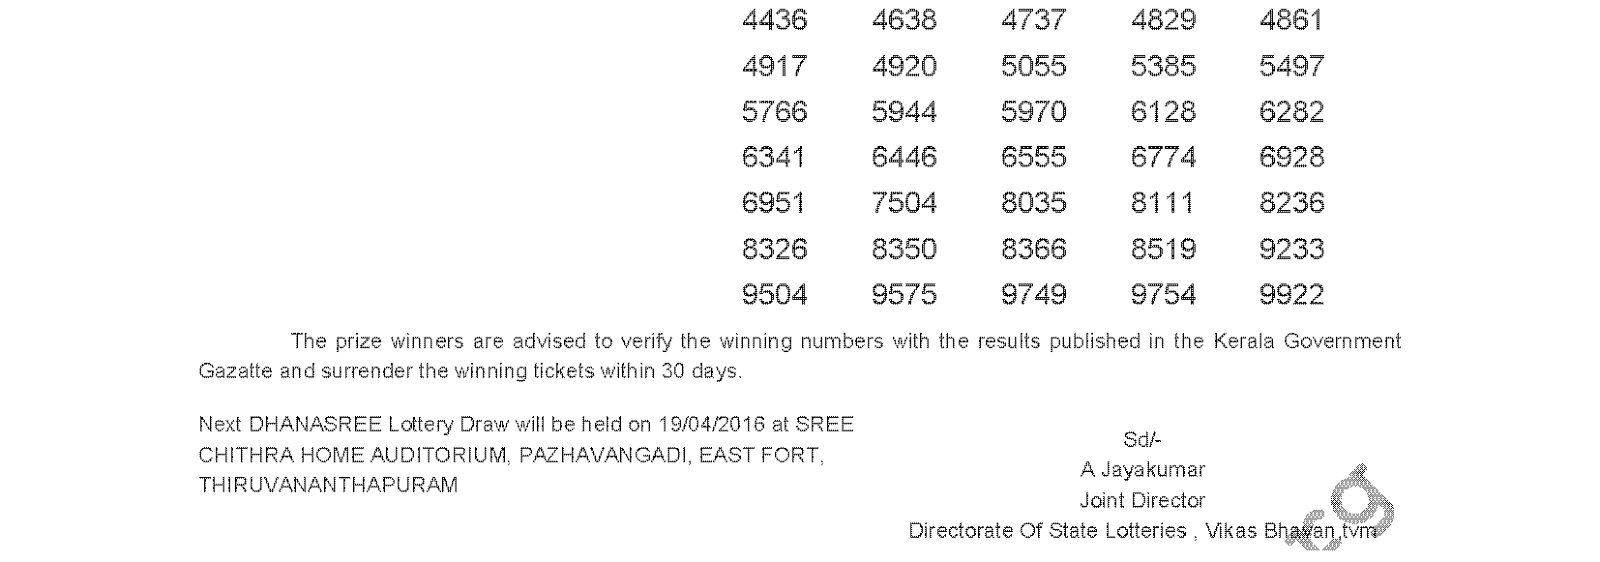 DHANASREE Lottery DS 232 Result 12-4-2016